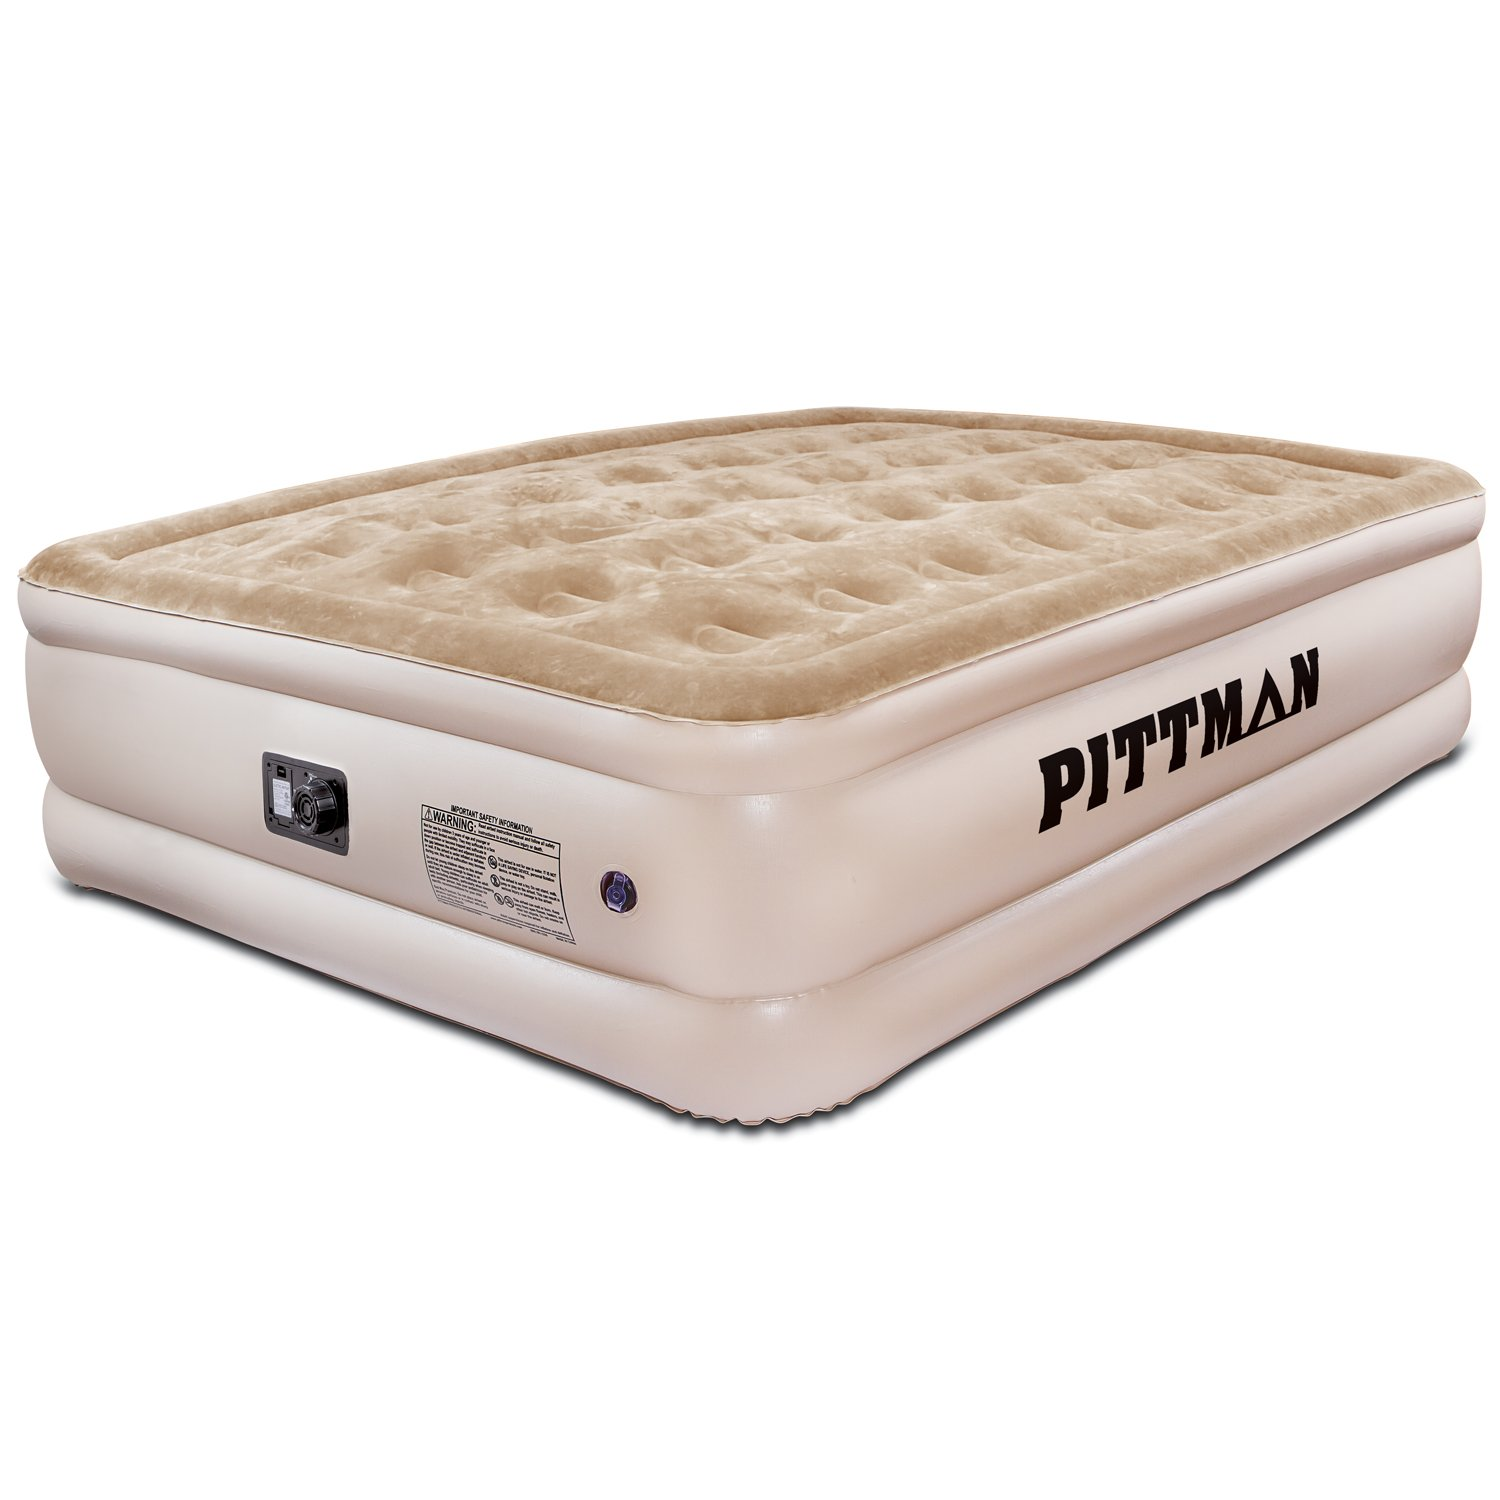 "Amazon.com: Pittman Outdoors PPI QCDH2 Queen Ultra Tan 20"" Double High  Indoor Home Air Mattress: Automotive"